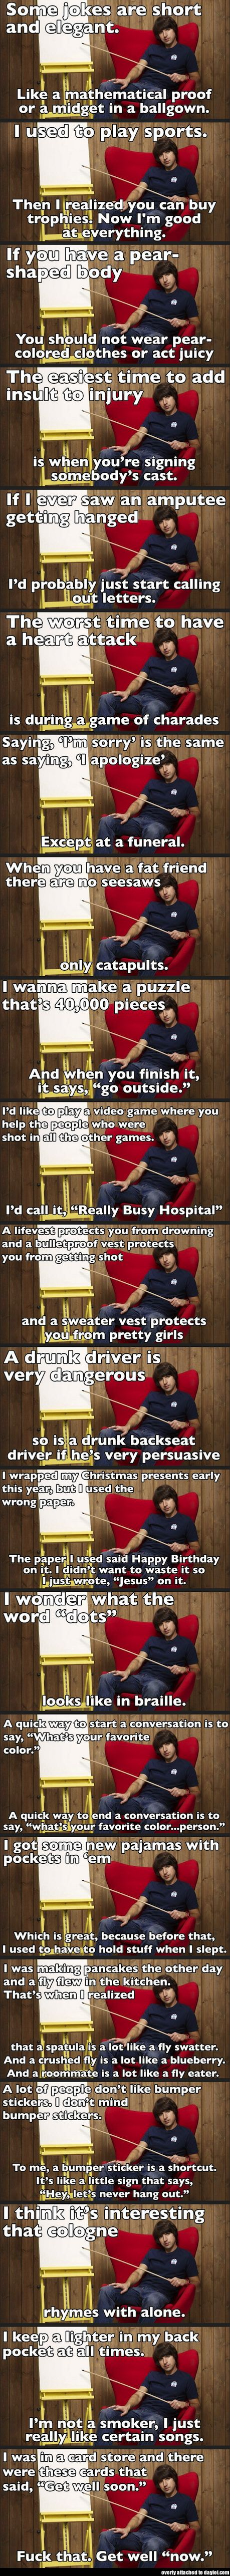 Demetri Martin Collection Sorry about the language its just so funny